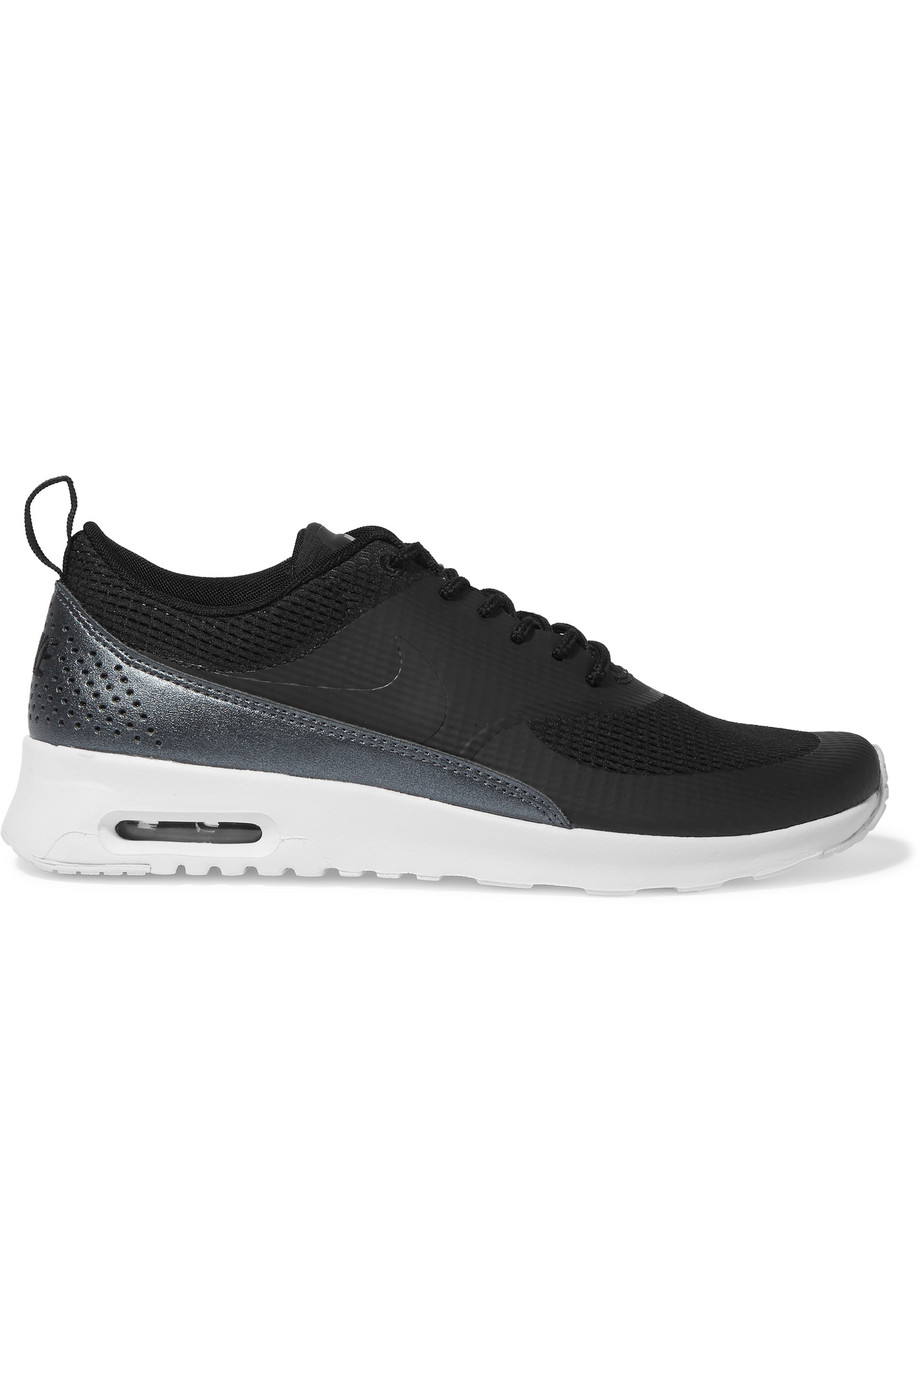 Nike Air Max Thea Mesh and Faux Leather Sneakers, Black, Women's, Size: 5.5